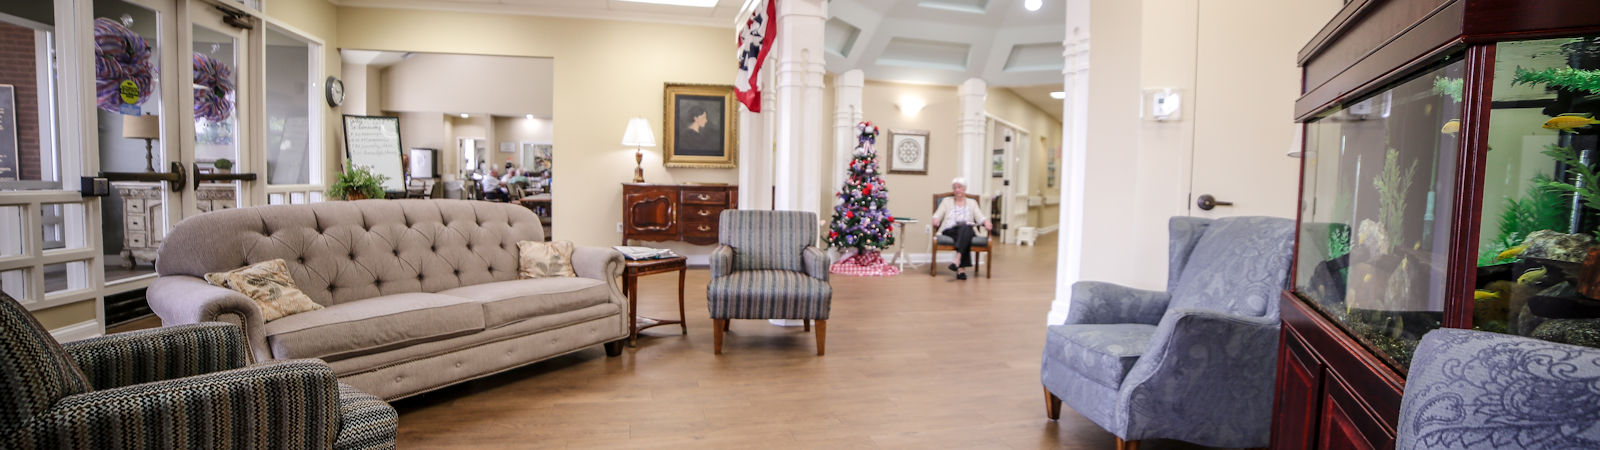 Hearthside Senior Living Common Area